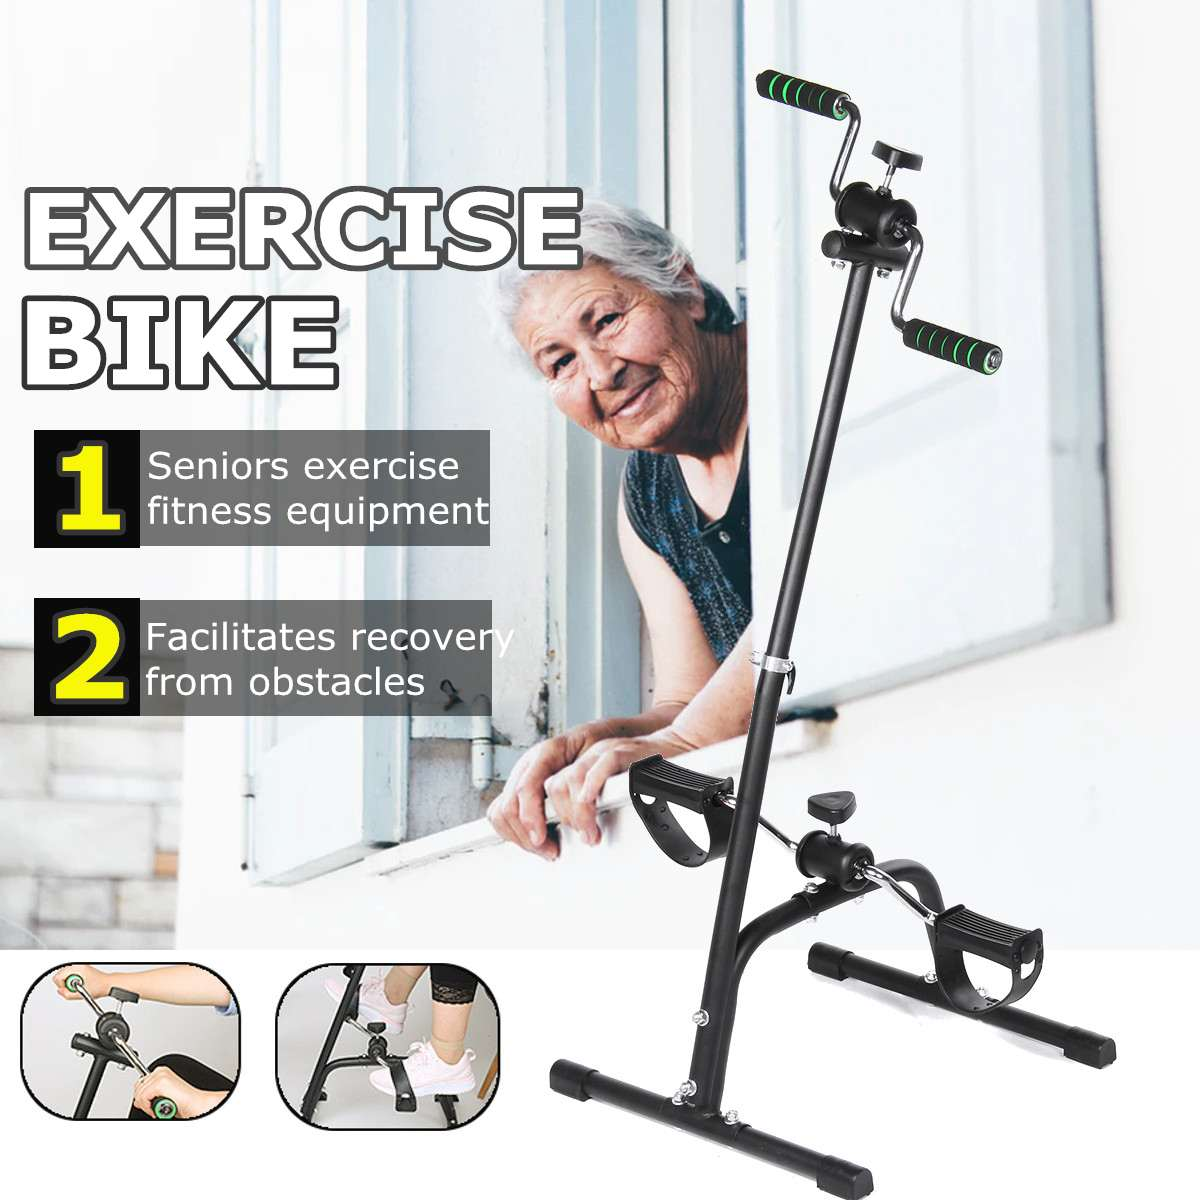 Exercise Bike Stationary Bike Trainer Cycling Bicycle Cardio Sport Gym Upright Bikes Home Gym Cardio-Tools Trainer Fitness-Equip